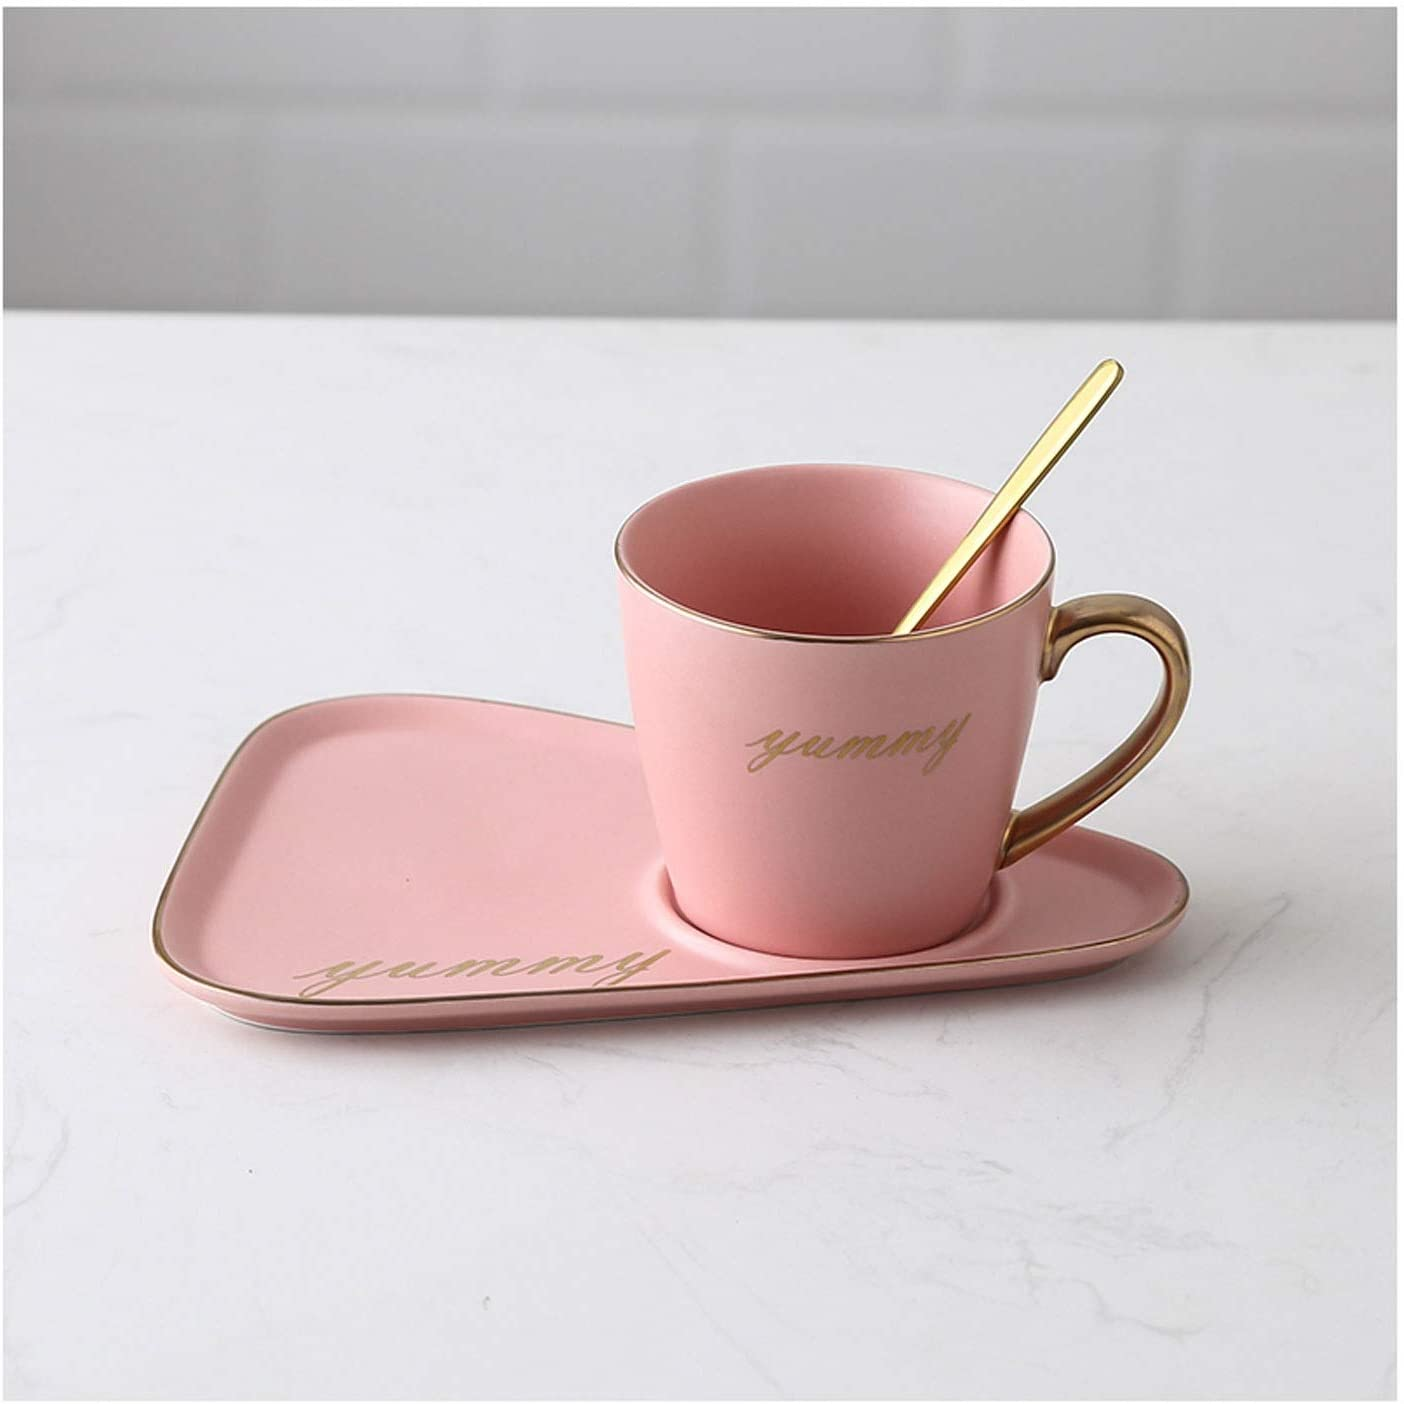 Matte Ceramic Coffee Cup Spoon and Oz 8.8 Tea Set All items in the store service C Tray